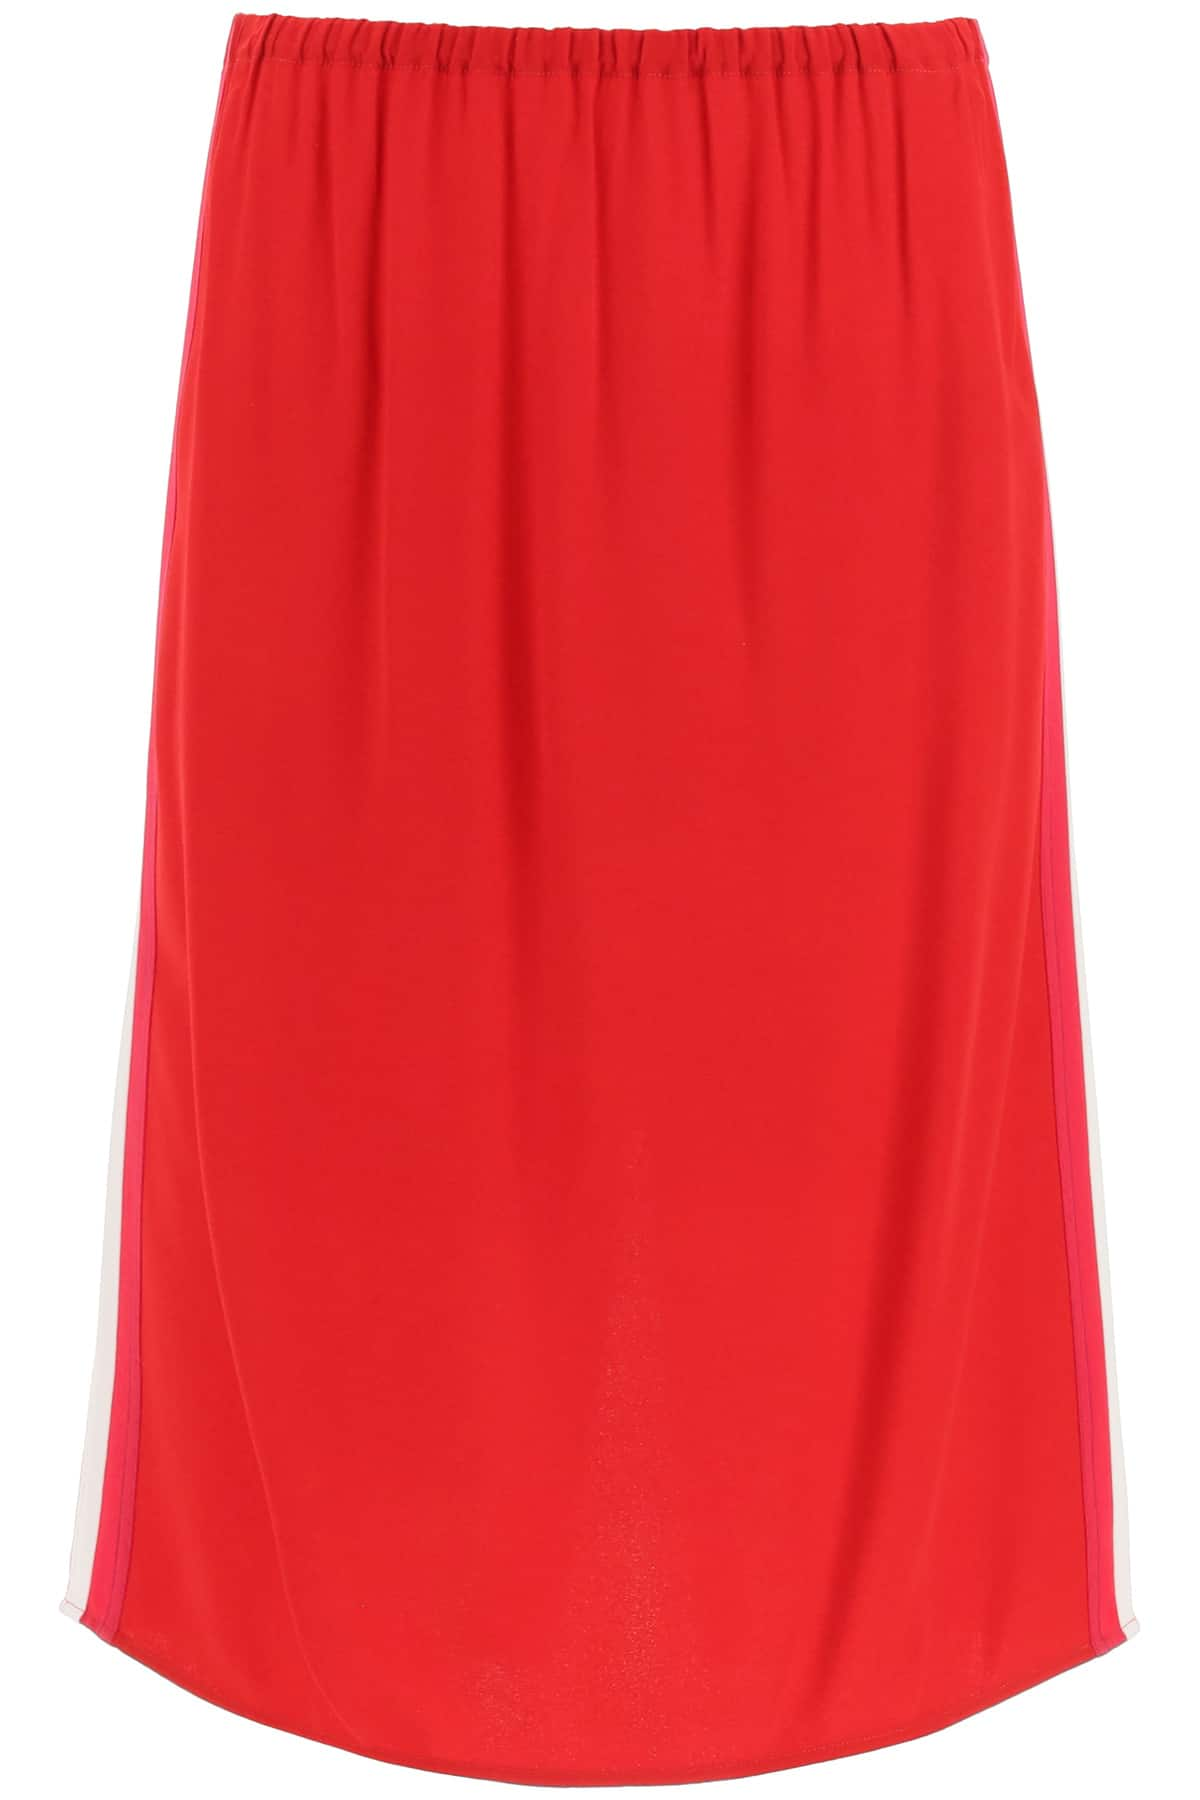 MARNI SKIRT IN CREPE ENVERS WITH BANDS 40 Red, White